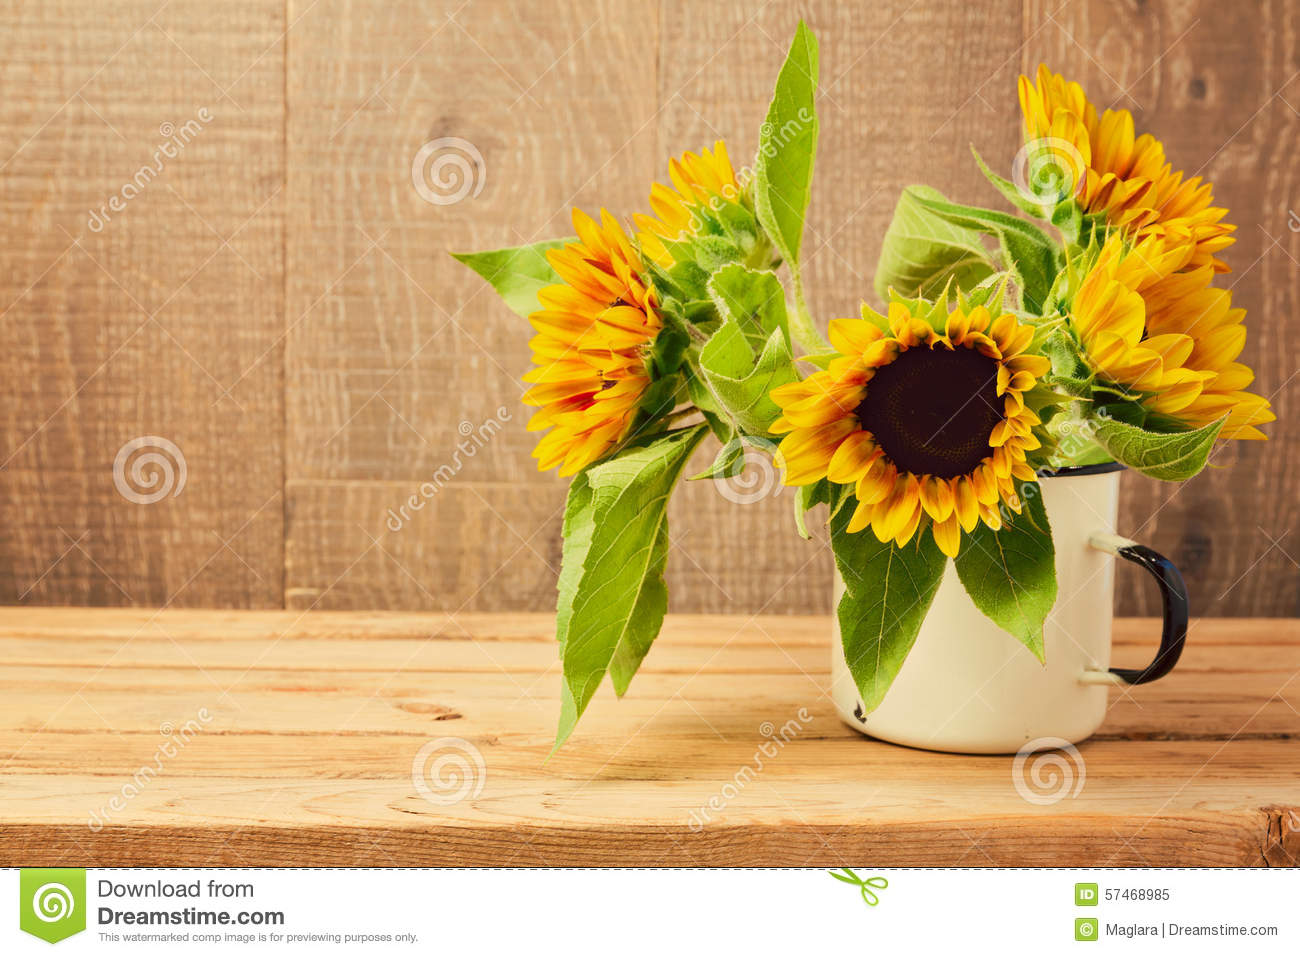 Free Fall Harvest Desktop Wallpaper Sunflowers In Vintage Cup On Wooden Table Stock Image